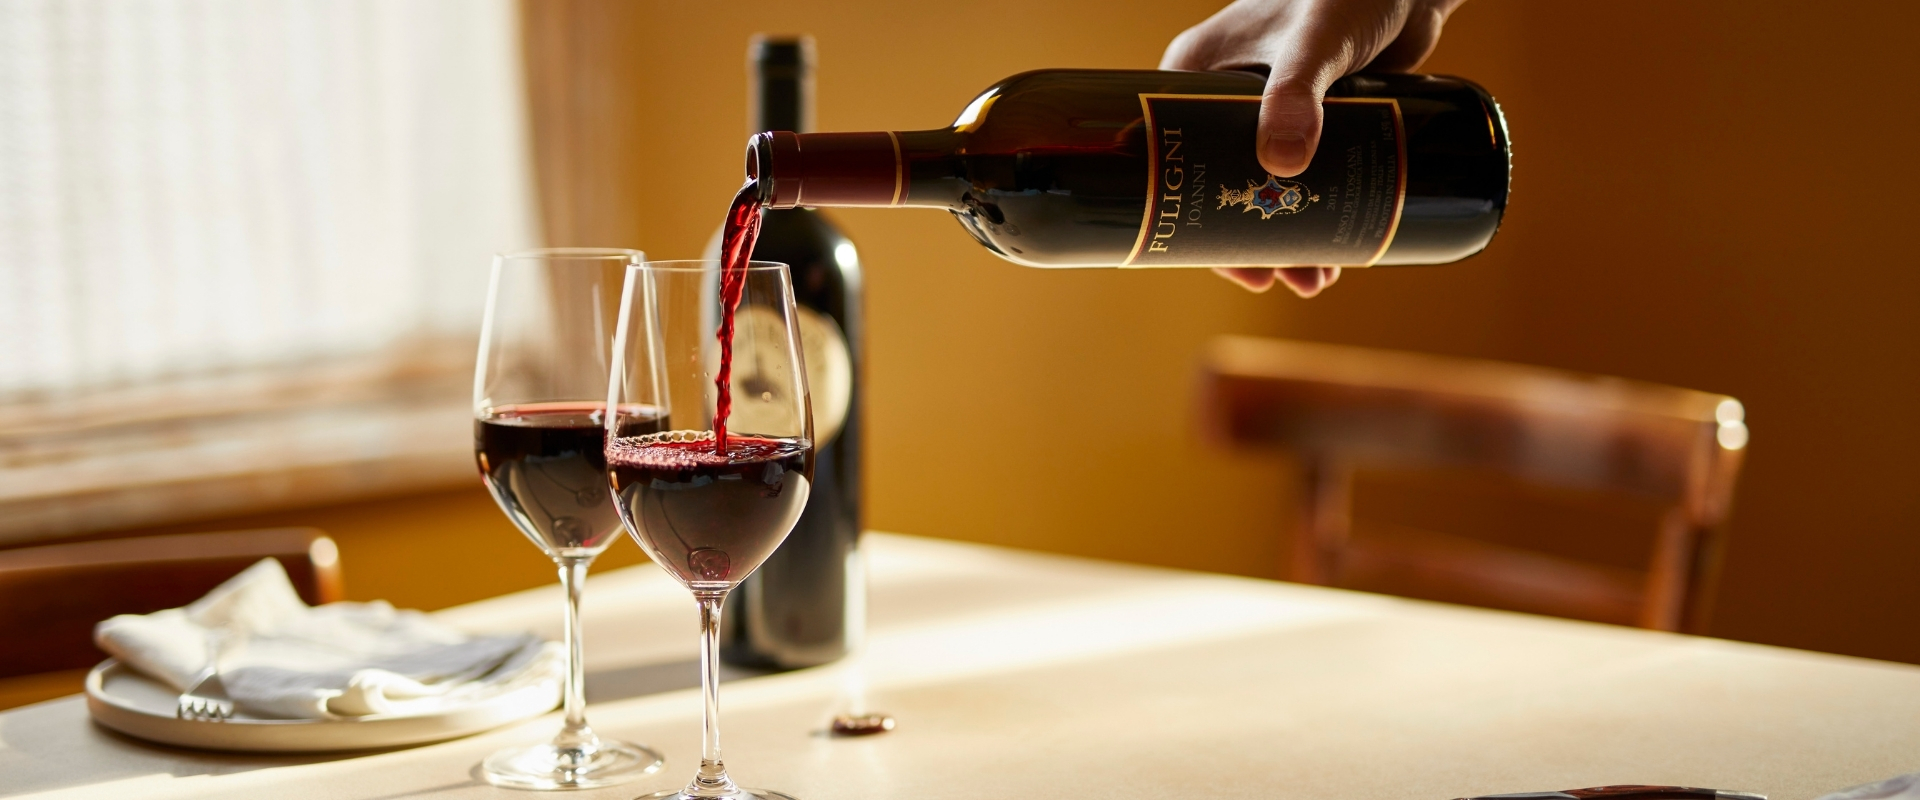 Super-Tuscan wine being poured into a glass